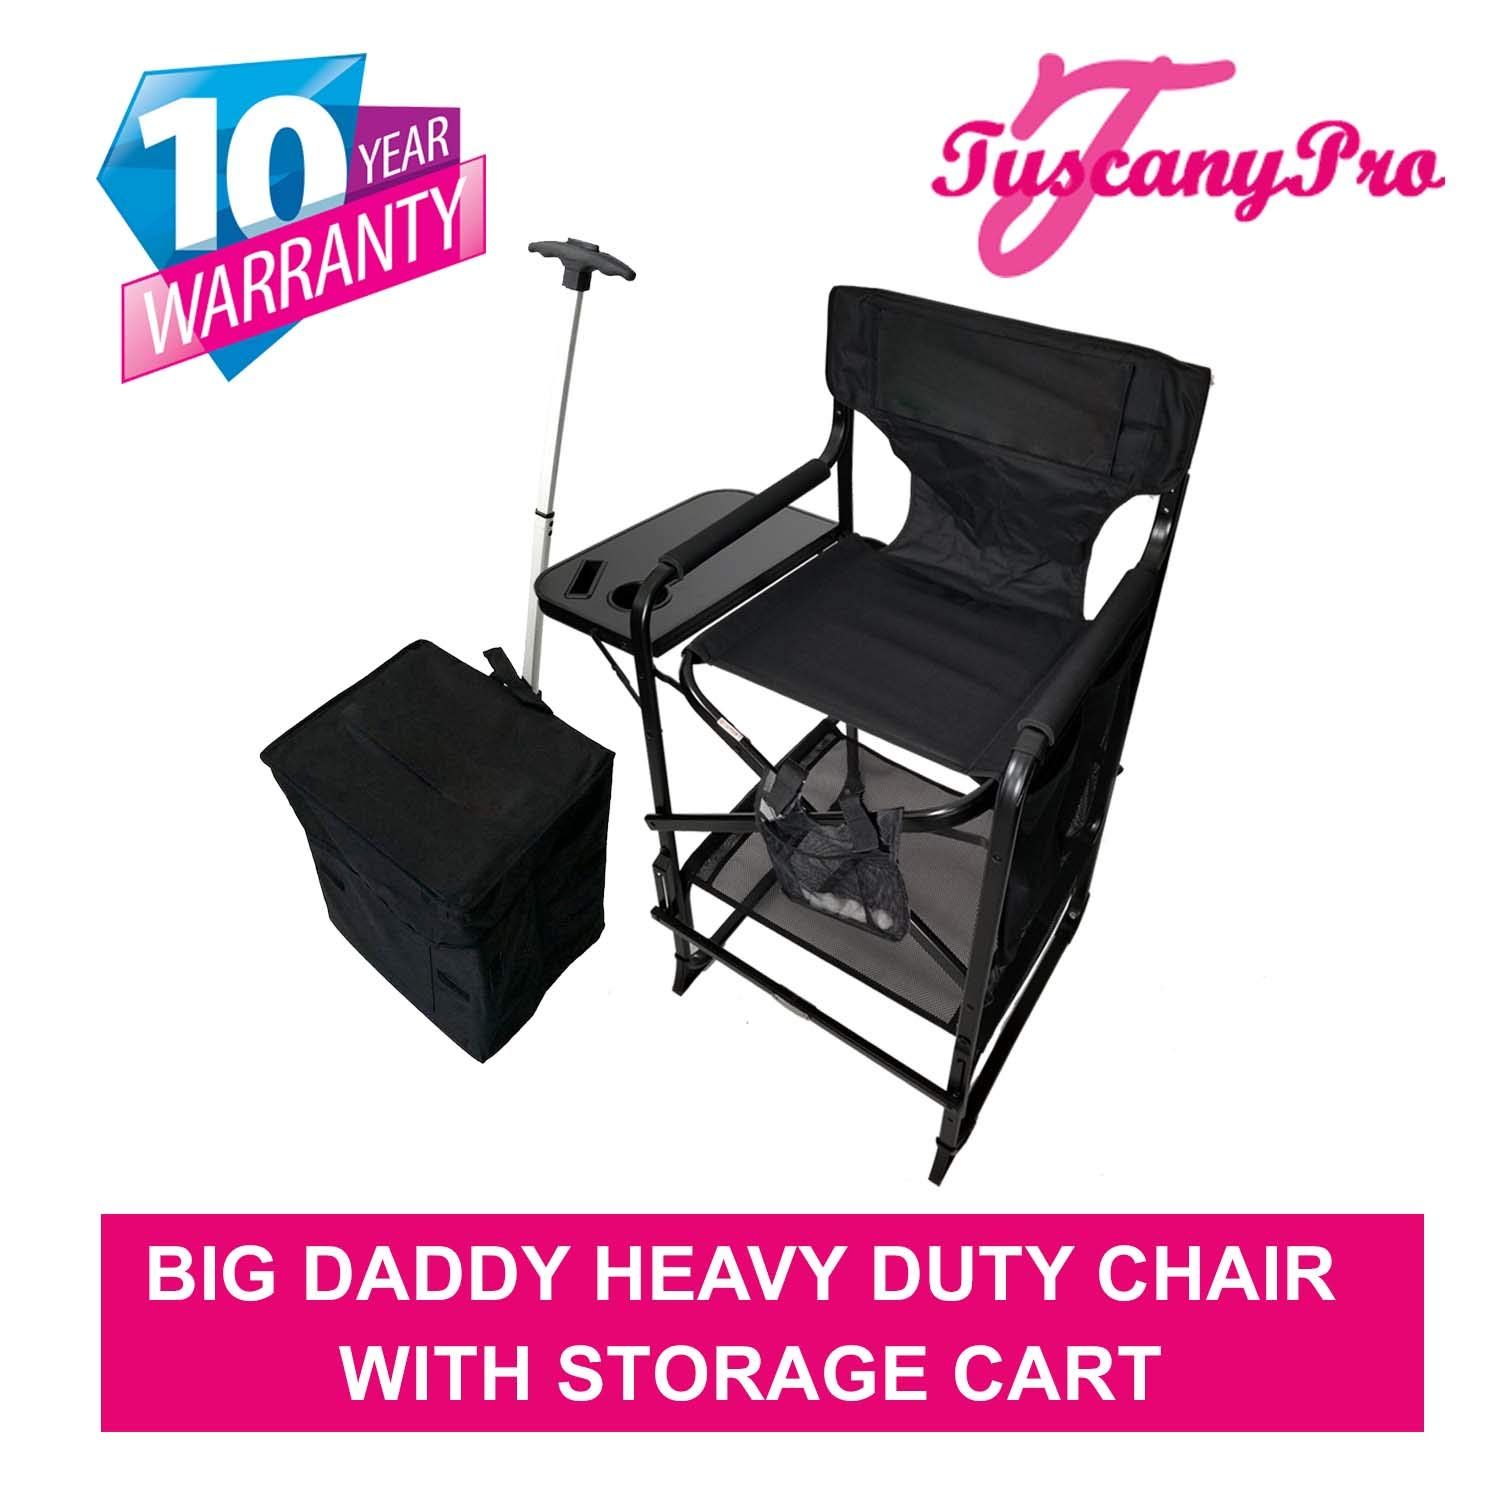 TUSCANYPRO MakeUp Artist''Big Daddy'' HEAVY DUTY Tall PRO Chair-10 Years Warranty PRODUCT-A BONUS MAKE UP CASE INCLUDED WITH YOUR CHAIR!!!BIGGER,WIDER AND BETTER-350 Lb/Max Weight Cap. by Oasis